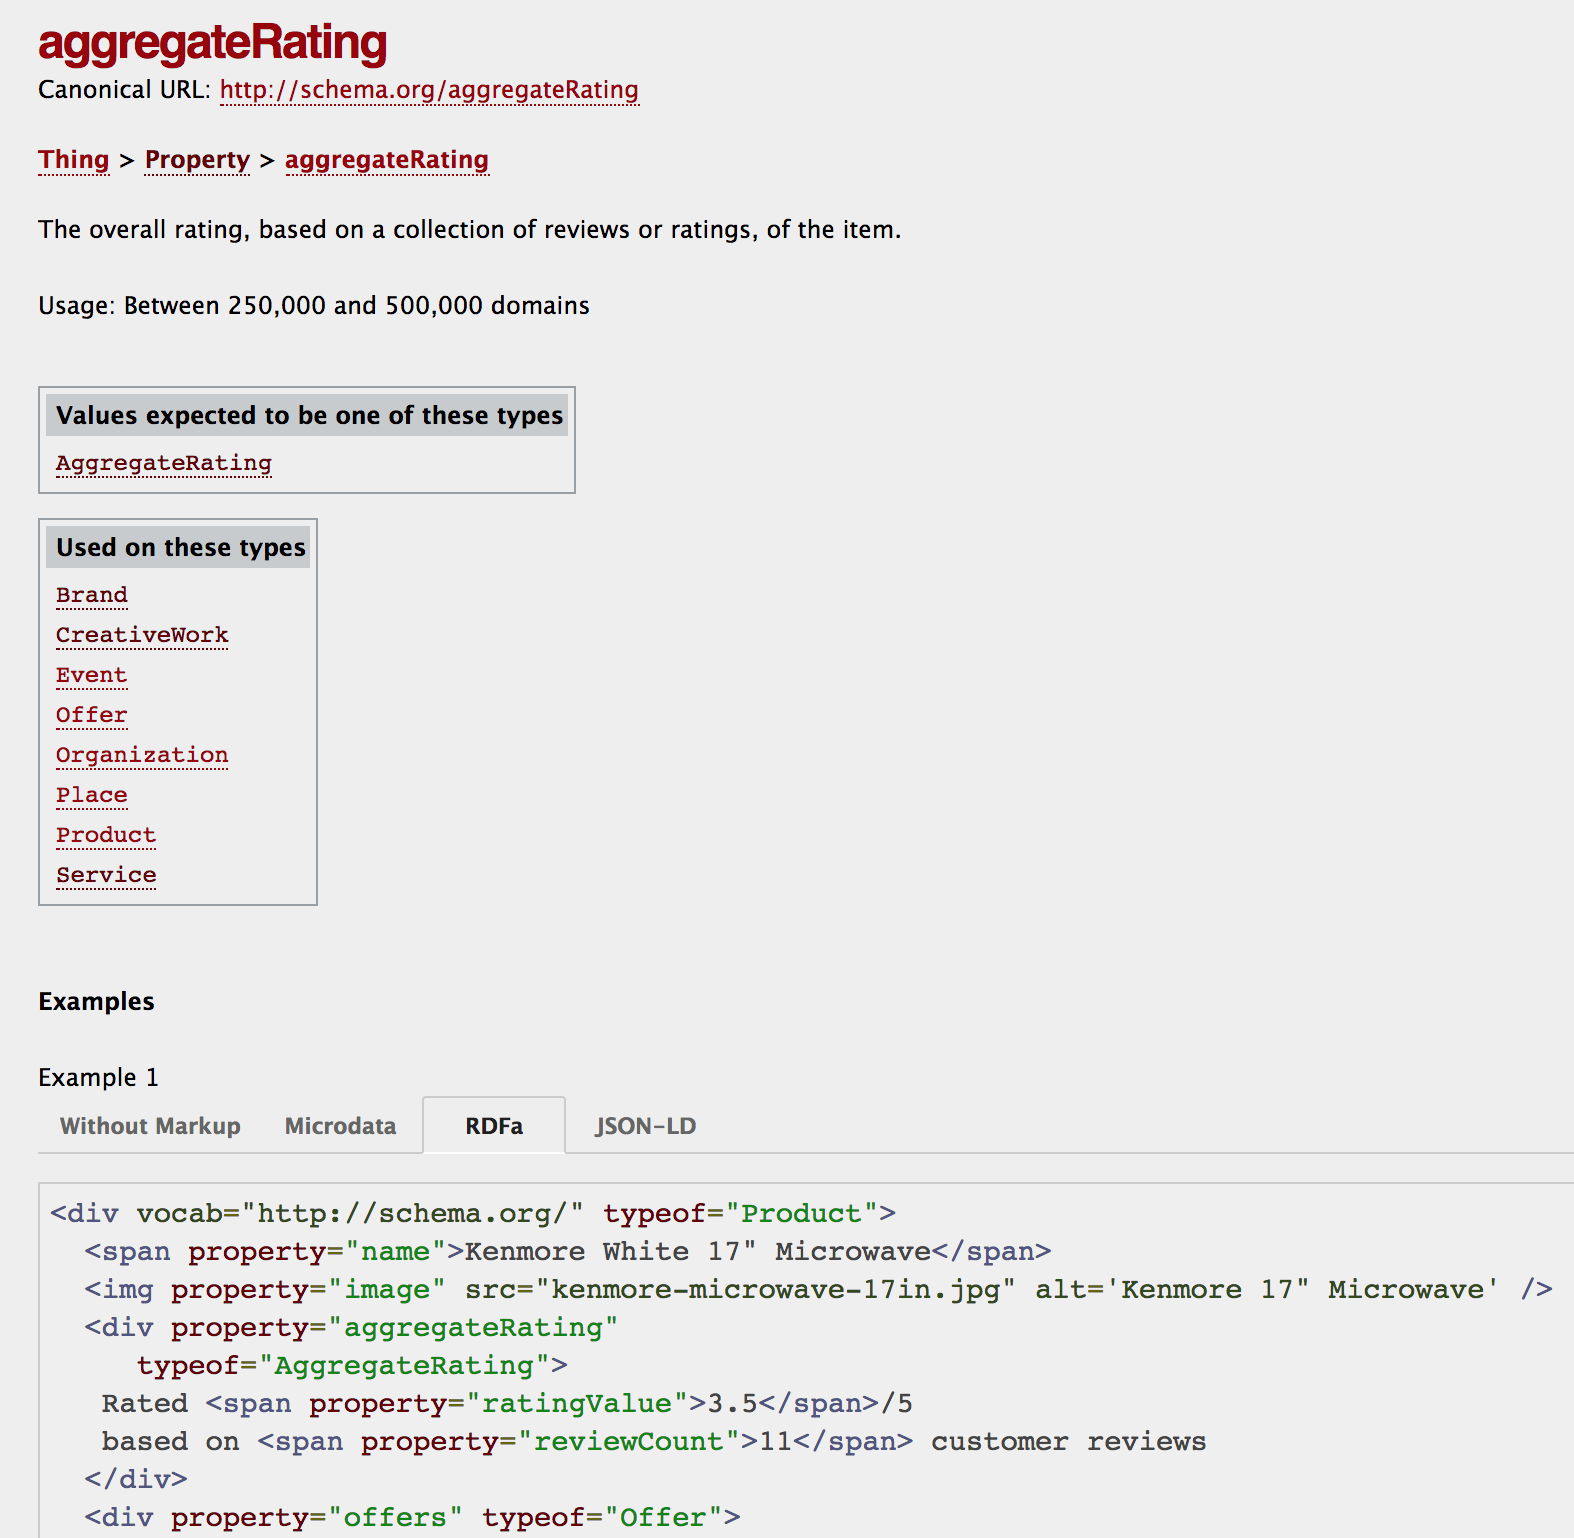 Portion of Schema.org aggregateRating property documentation page